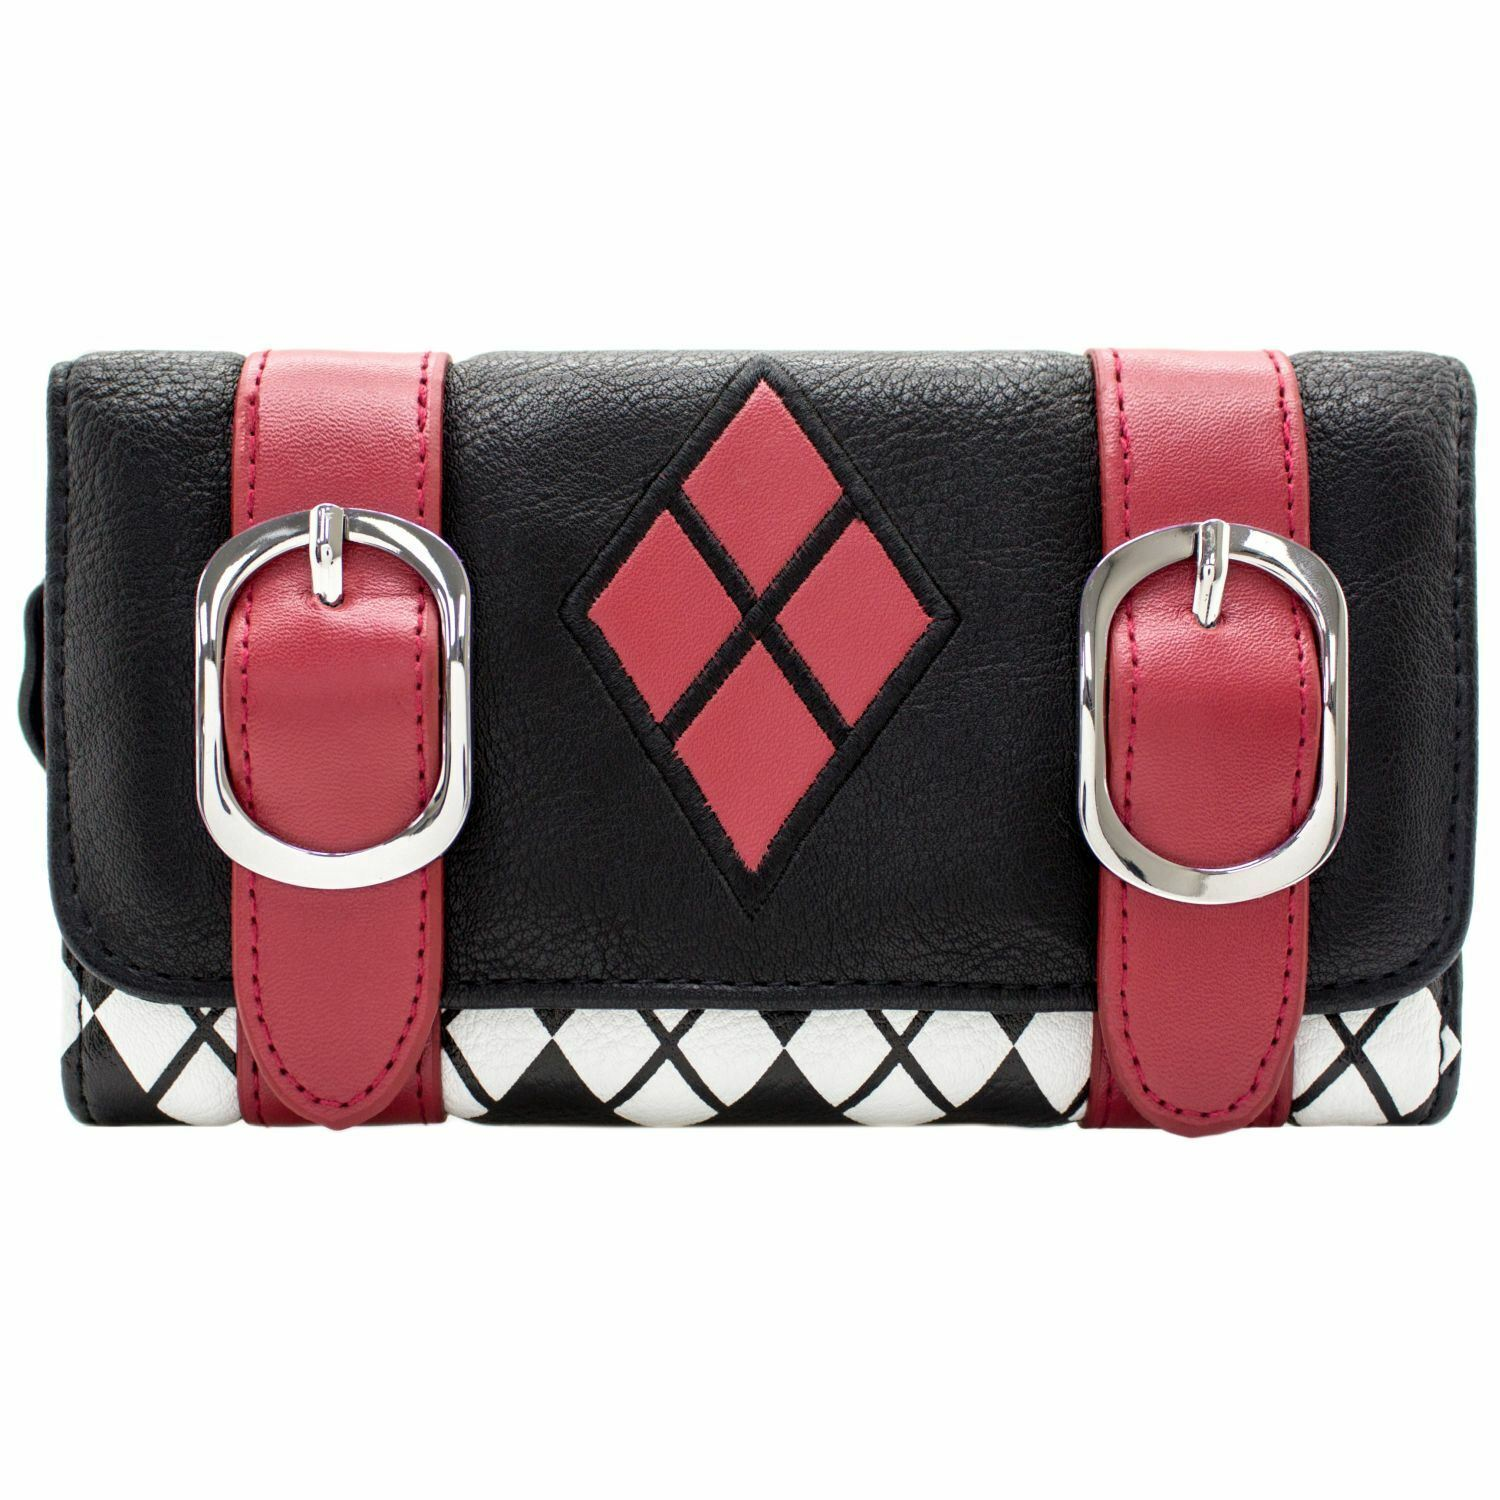 Official Suicide Squad Harley Quinn Buckle Black Coin & Card Purse *SECOND*